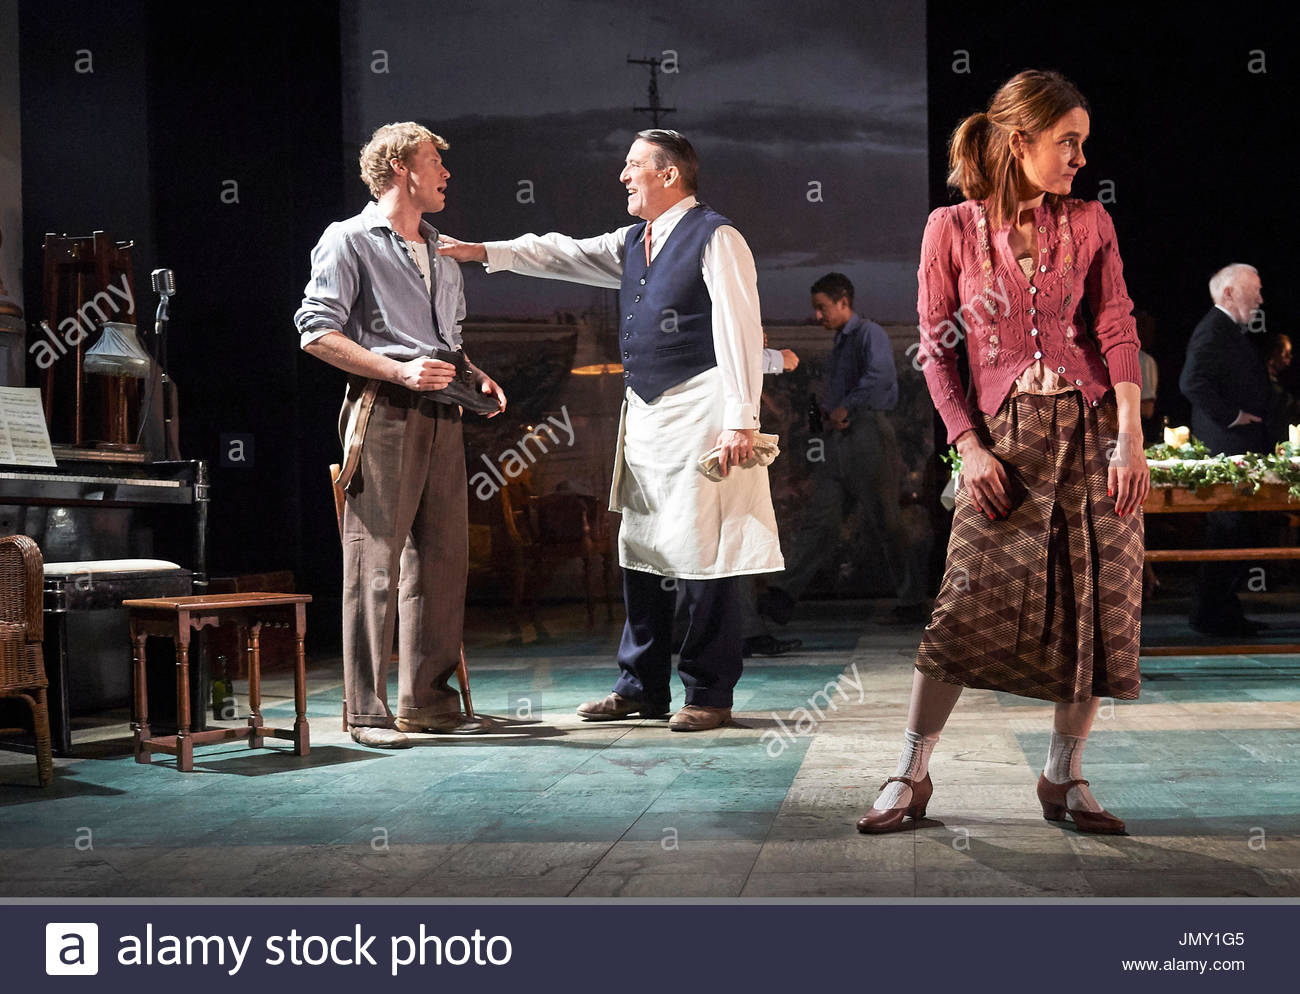 Girl From The North Country,written and directed by Conor McPherson, music and Lyrics by Bob Dylan. With Sam Reid as Gene Laine,Ciaran Hinds as Nick Laine, Shirley Henderson as Elizabeth Laine. Opens at The Old Vic Theatre on 26/7/17. - Stock Image